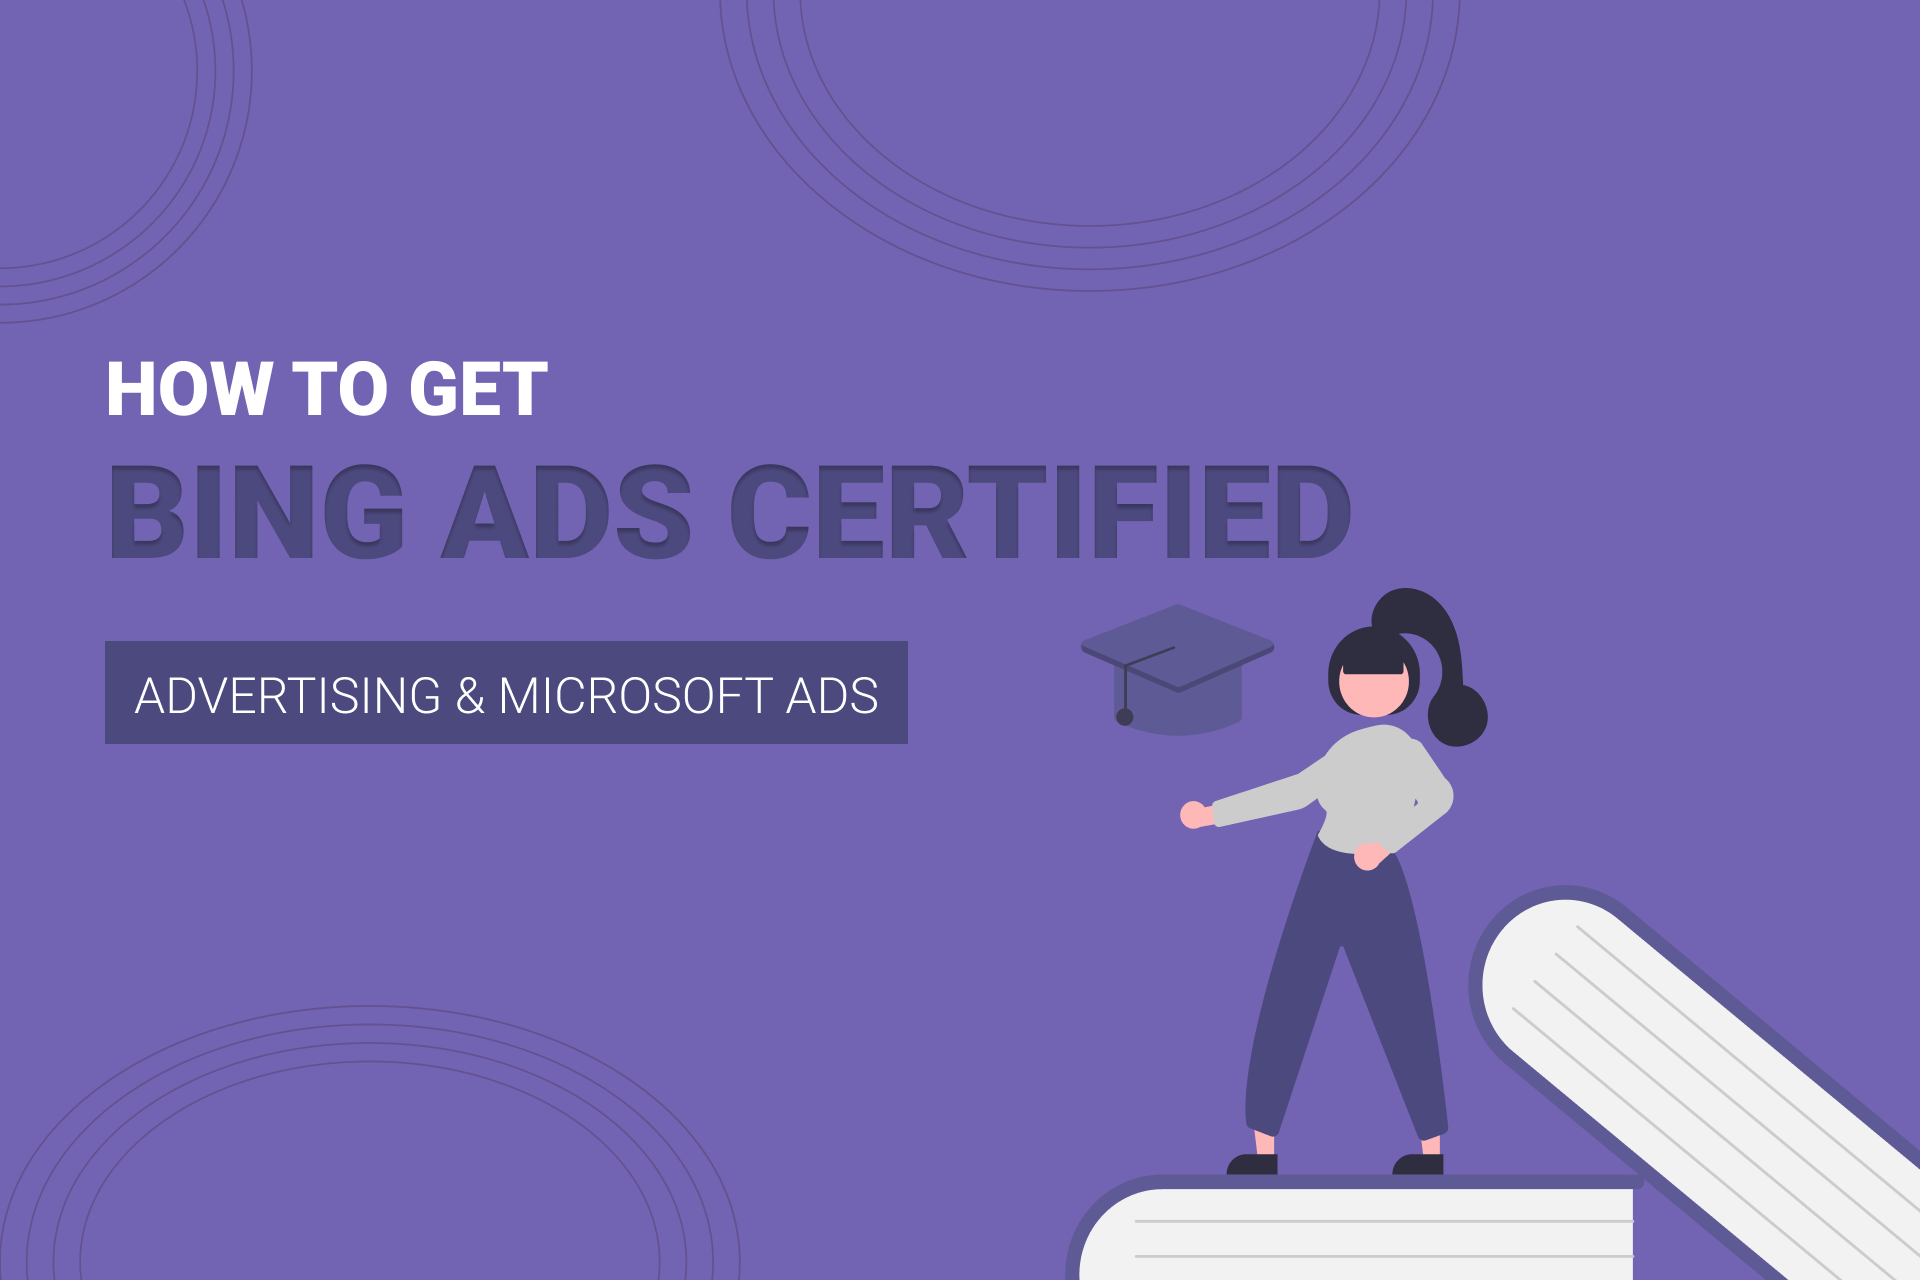 How To Get Bing Ads Certified